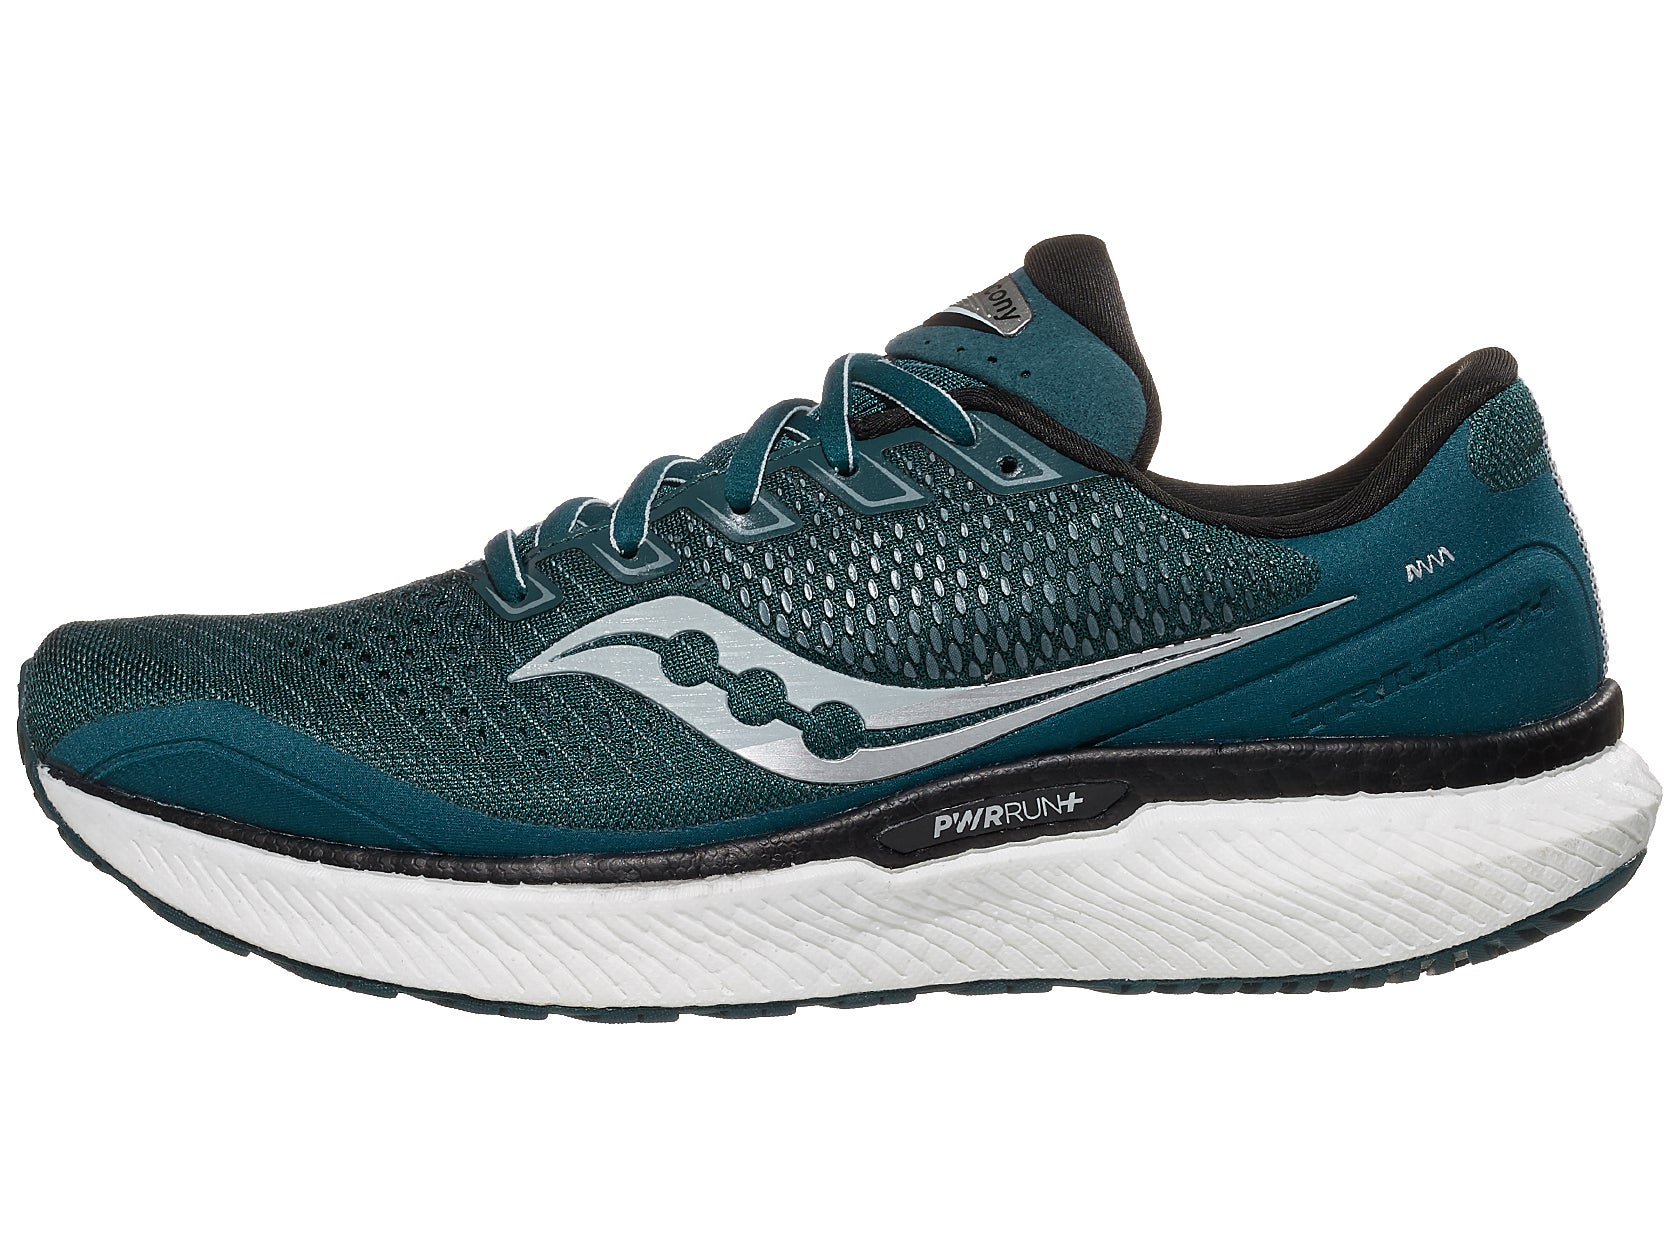 Saucony Triumph 18 Giveaway Giveaway Image